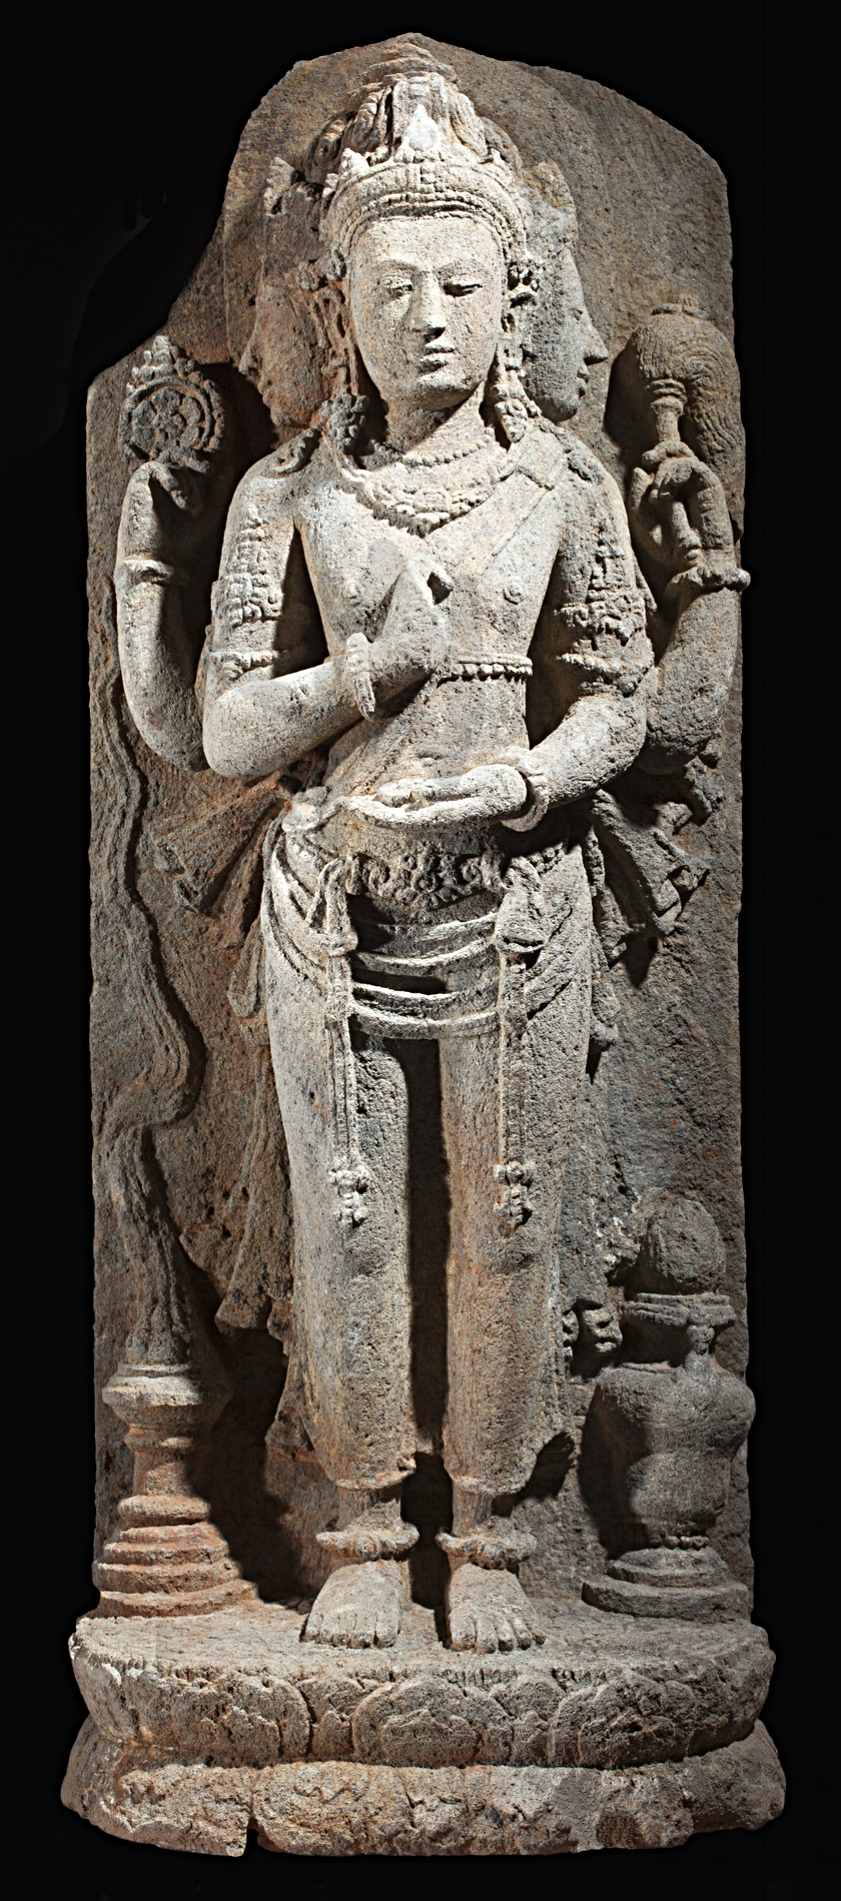 Brahma, the God of Creation, Central Java, Indonesia, 9th century volcanic stone sculpture